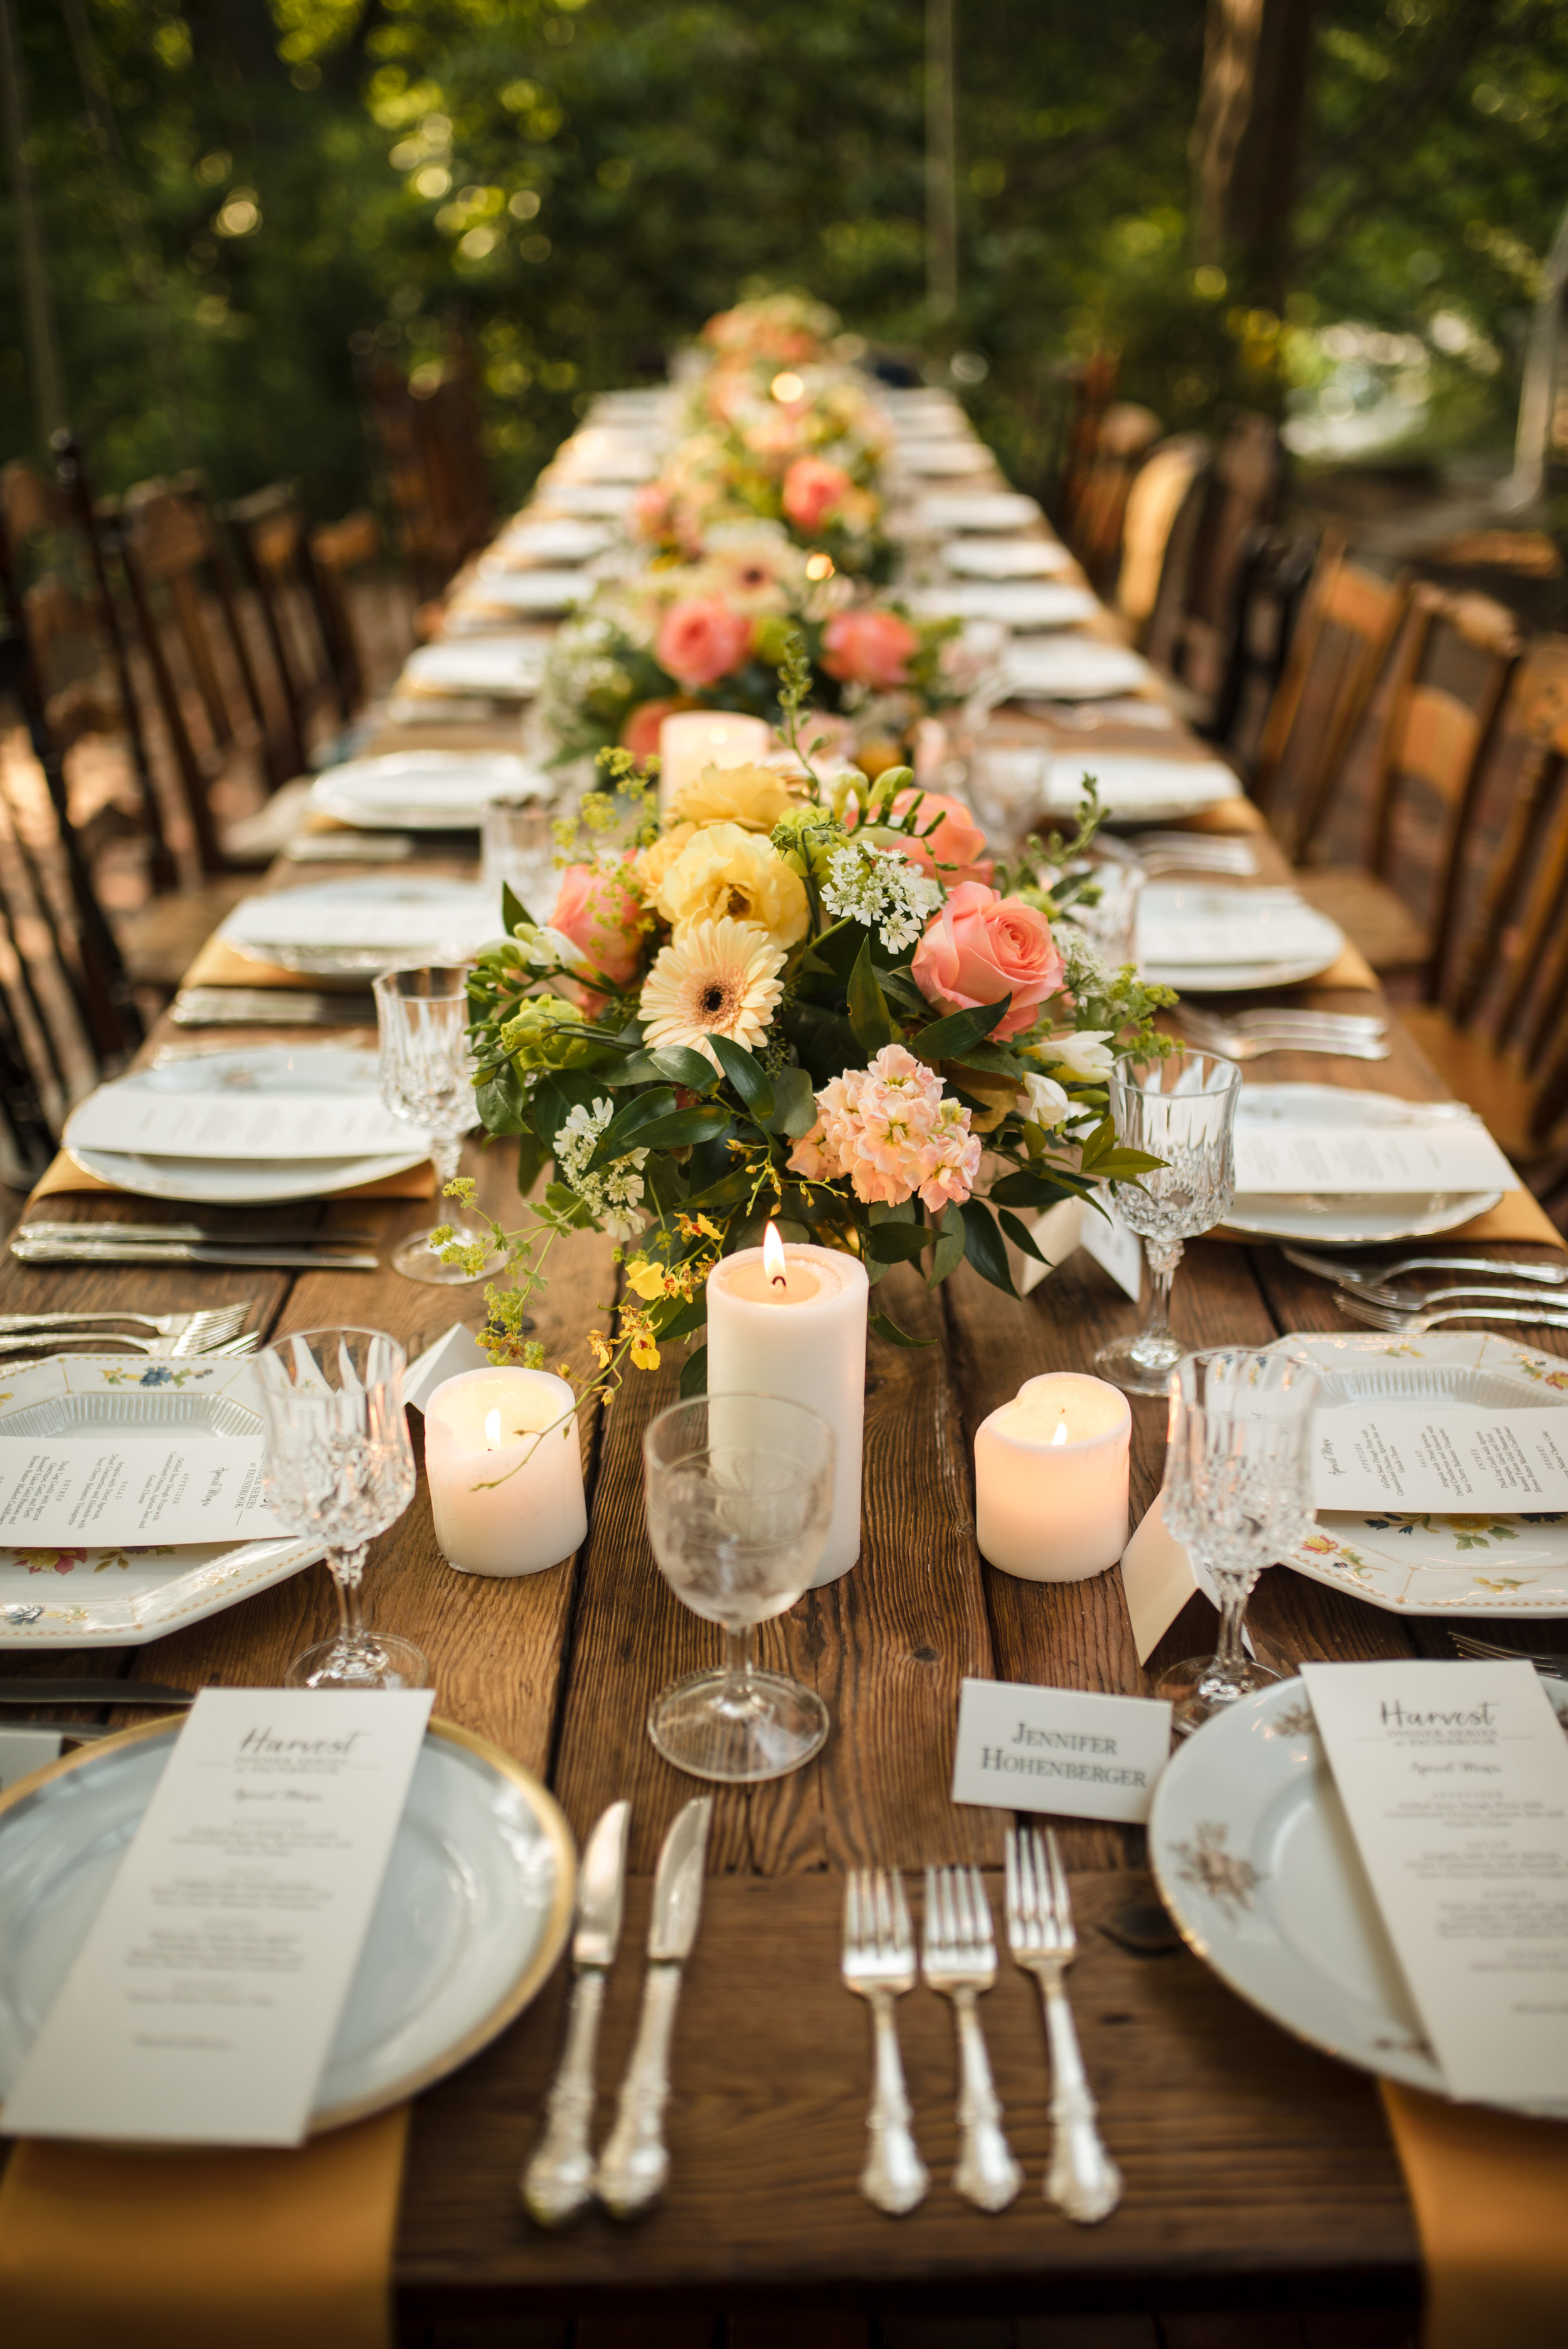 West-Chester-PA-Faunbrook-Harvest-Dinner-Series-Apricot-ChristieGreenPhotography-17.jpg